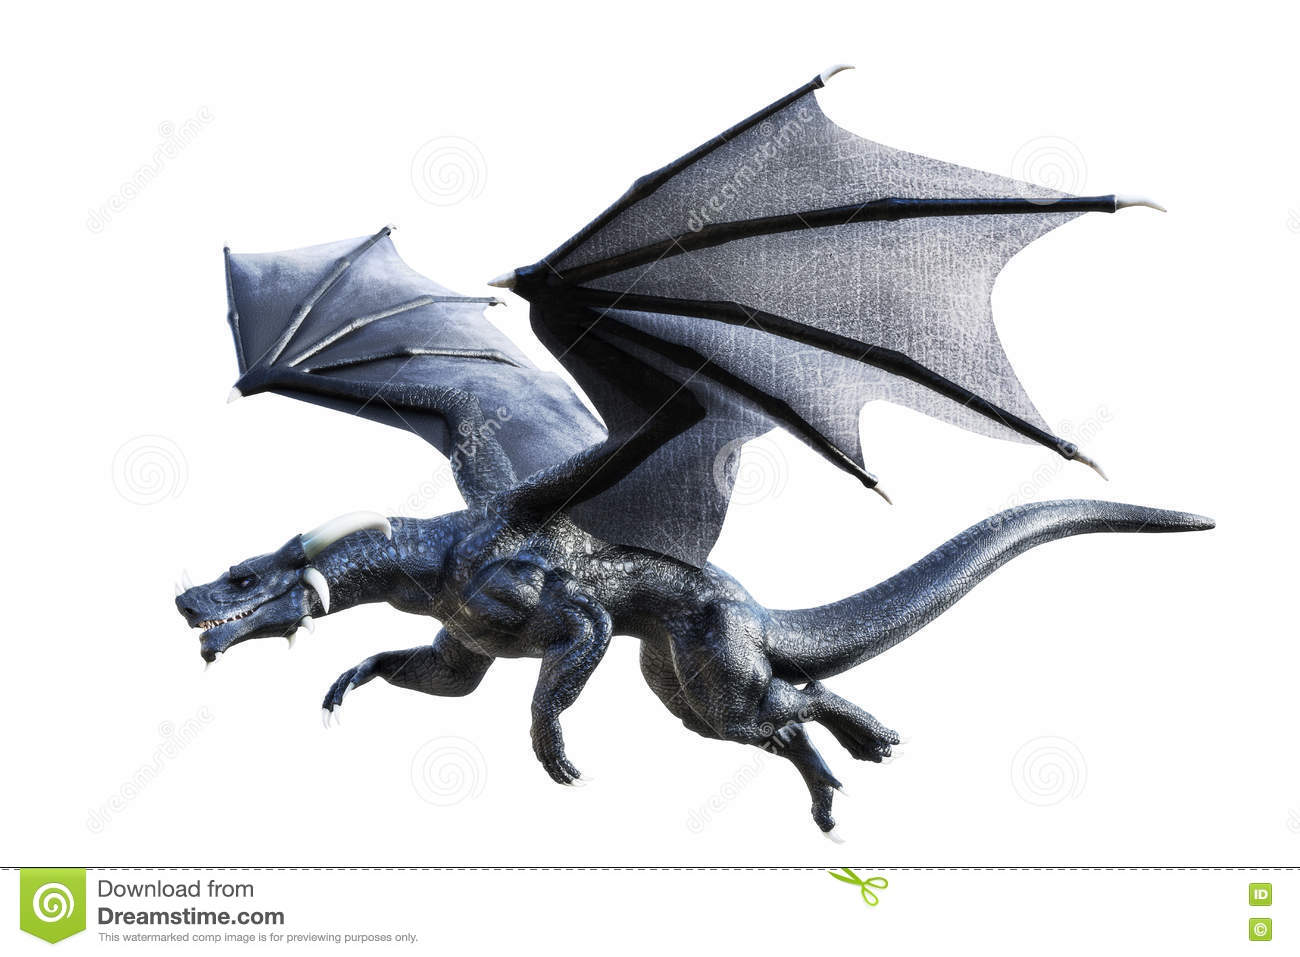 3d rendering of a black fantasy dragon flying isolated on